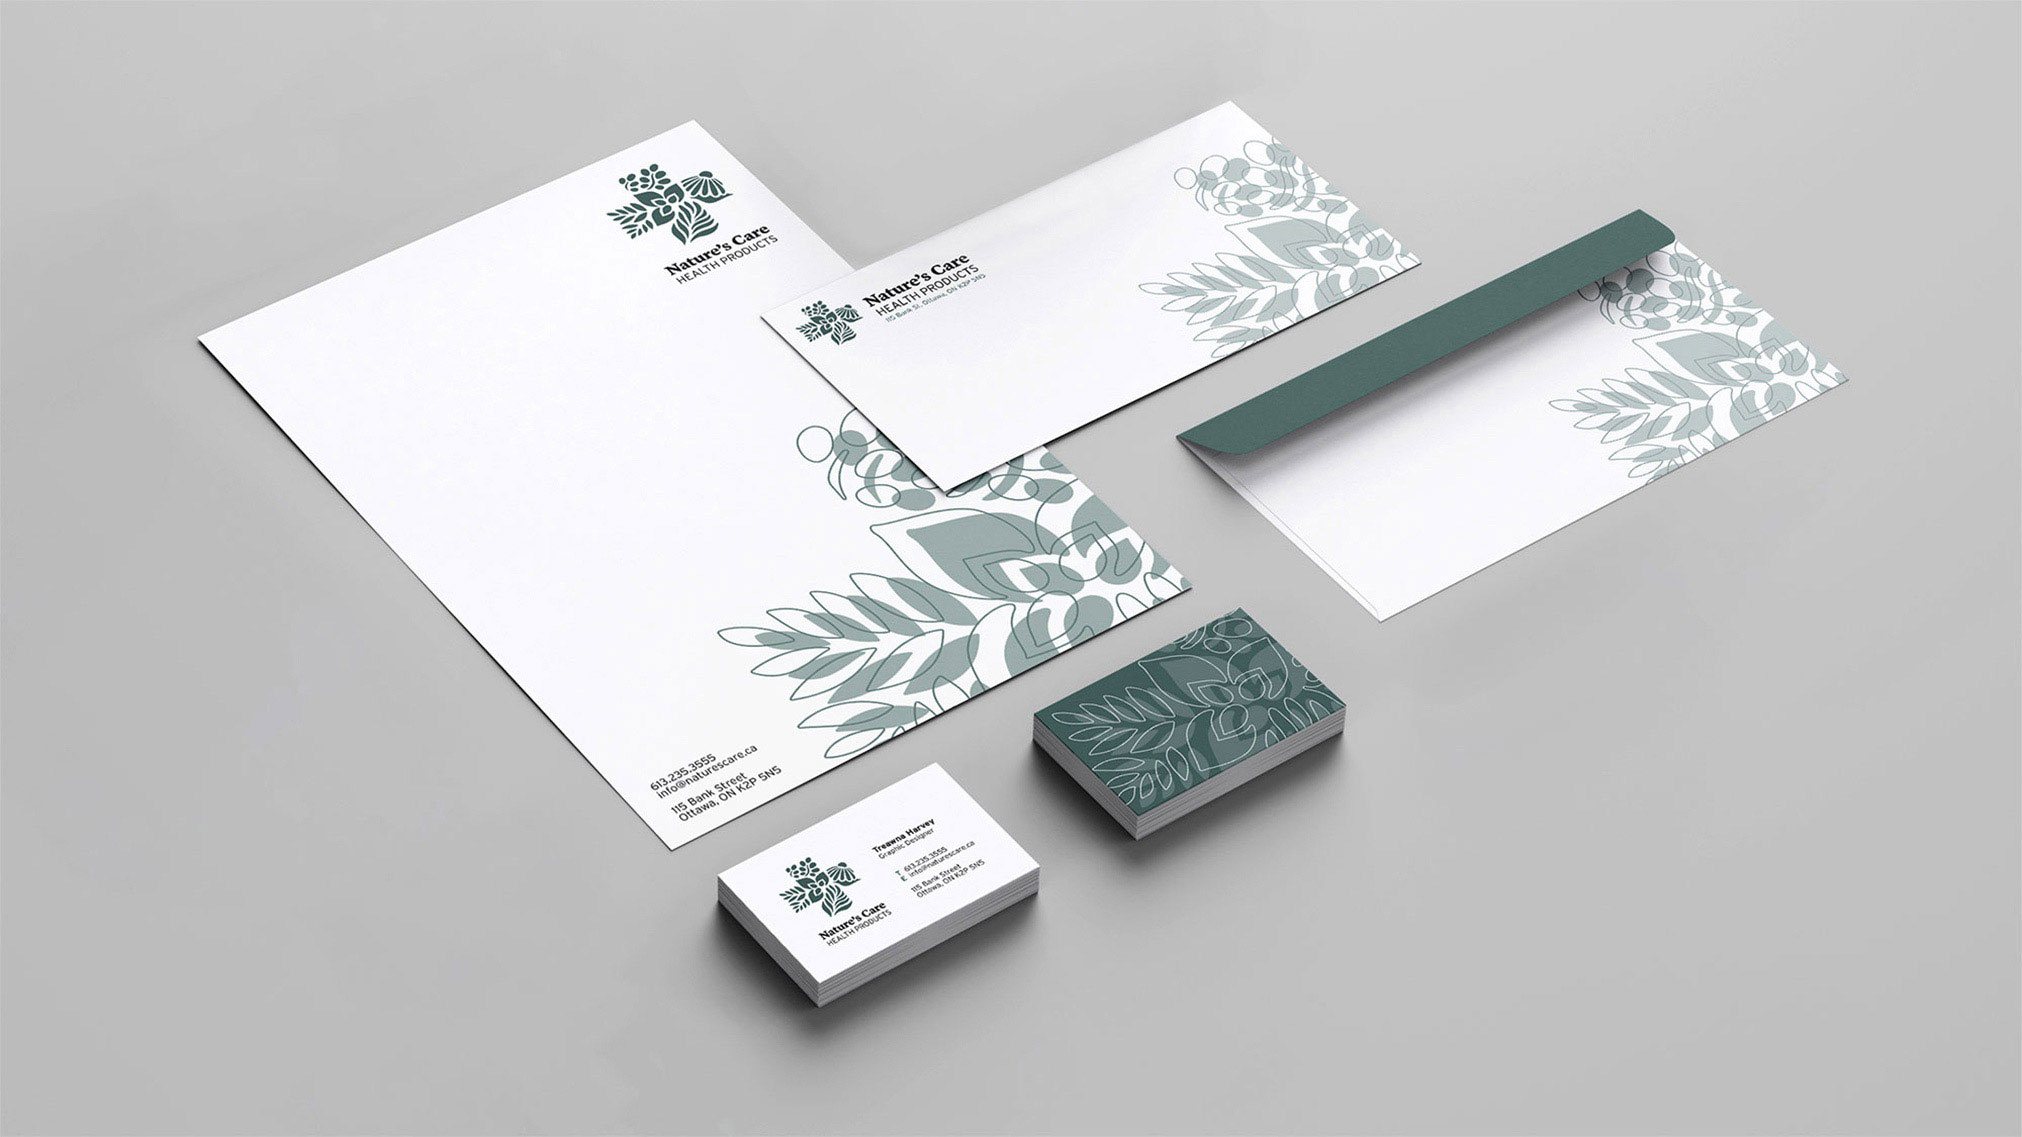 Branding, logo and stationery design for a local health product shop.